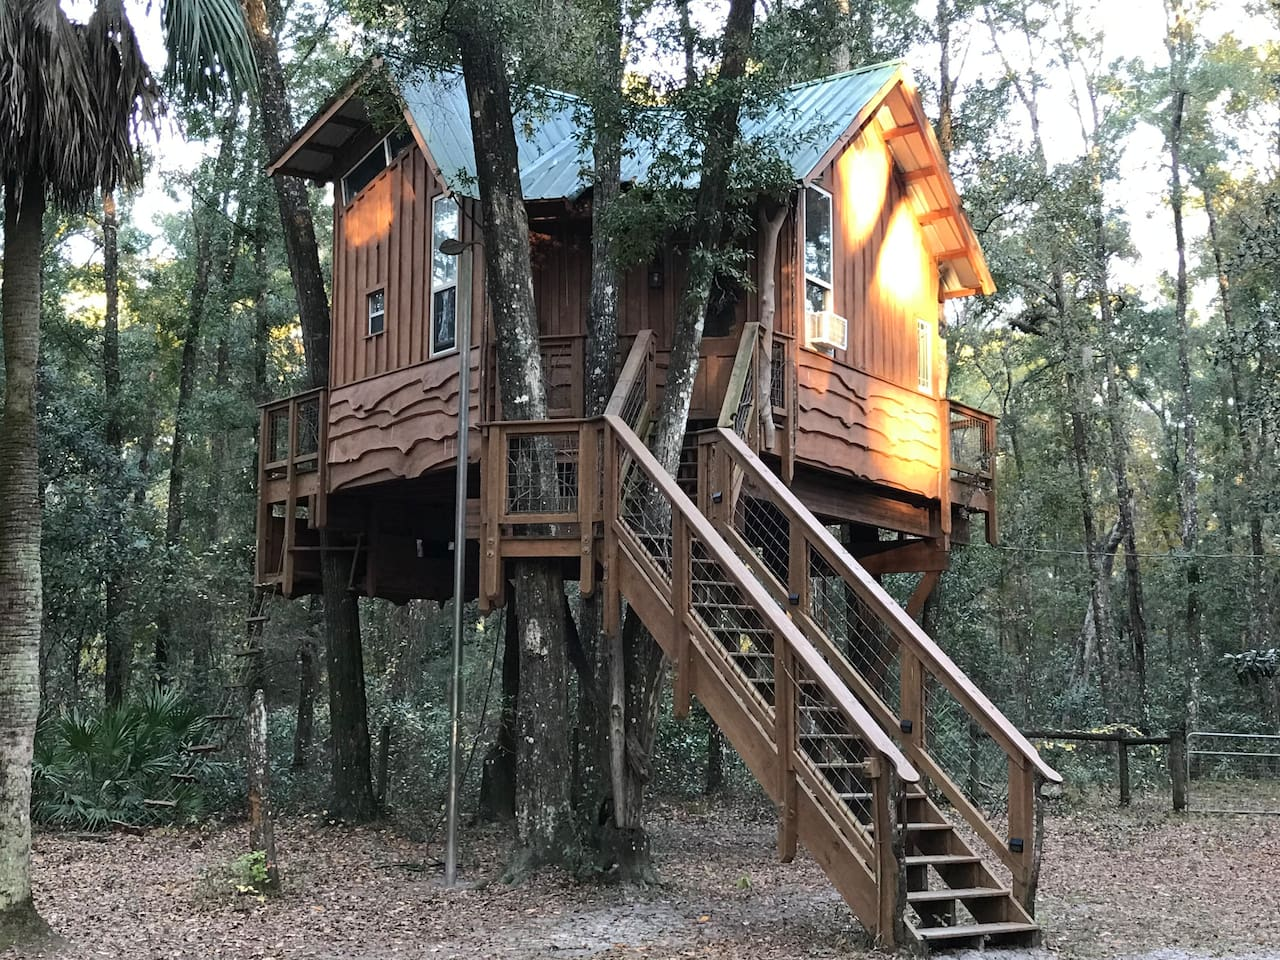 The Treehouse Cabin Retreat